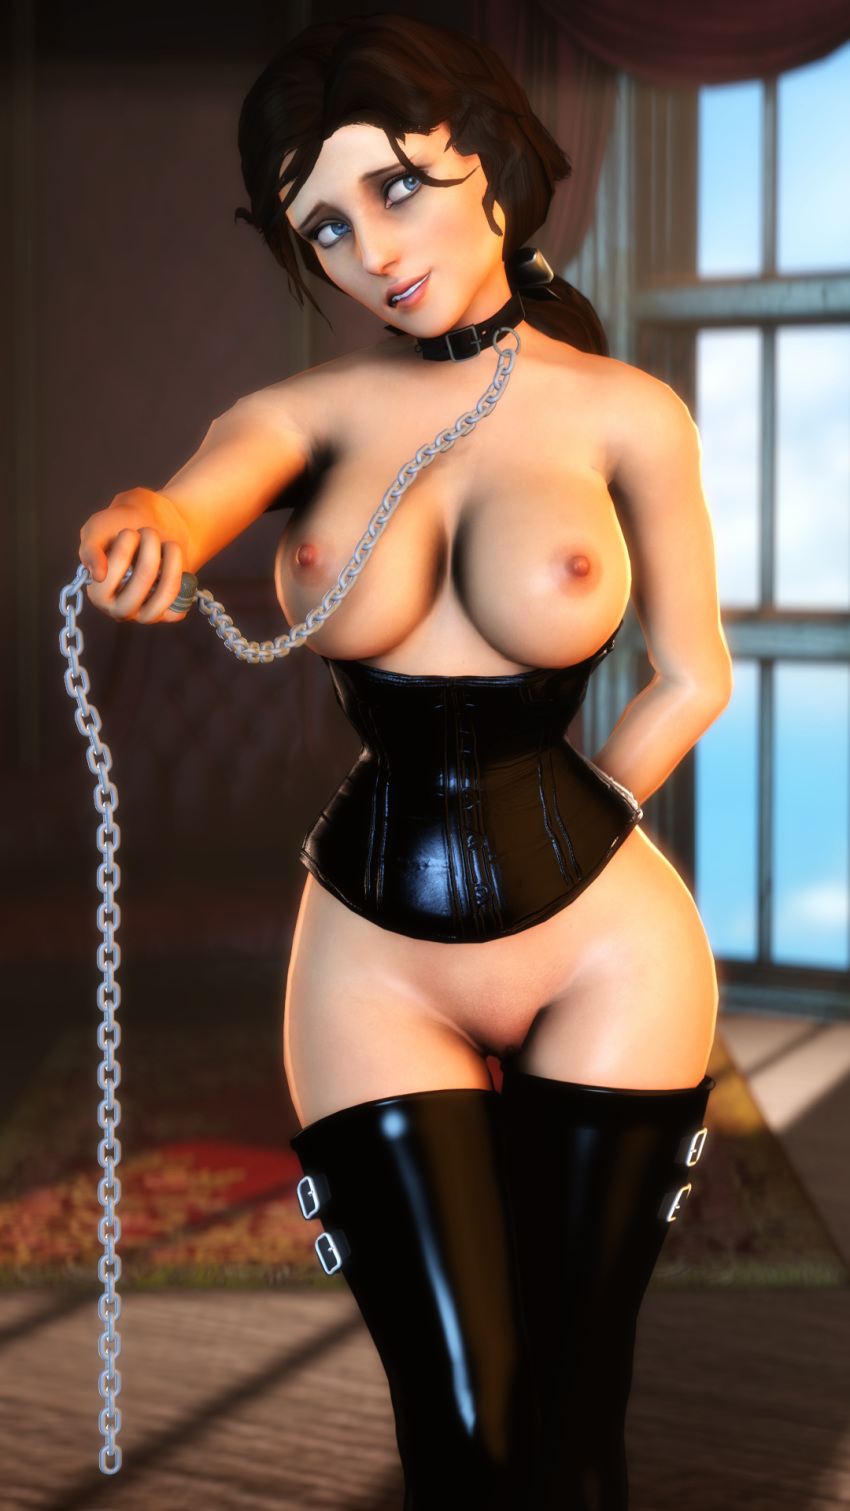 1girl bioshock bioshock_infinite bondage breasts corset elizabeth leash pussy stockings